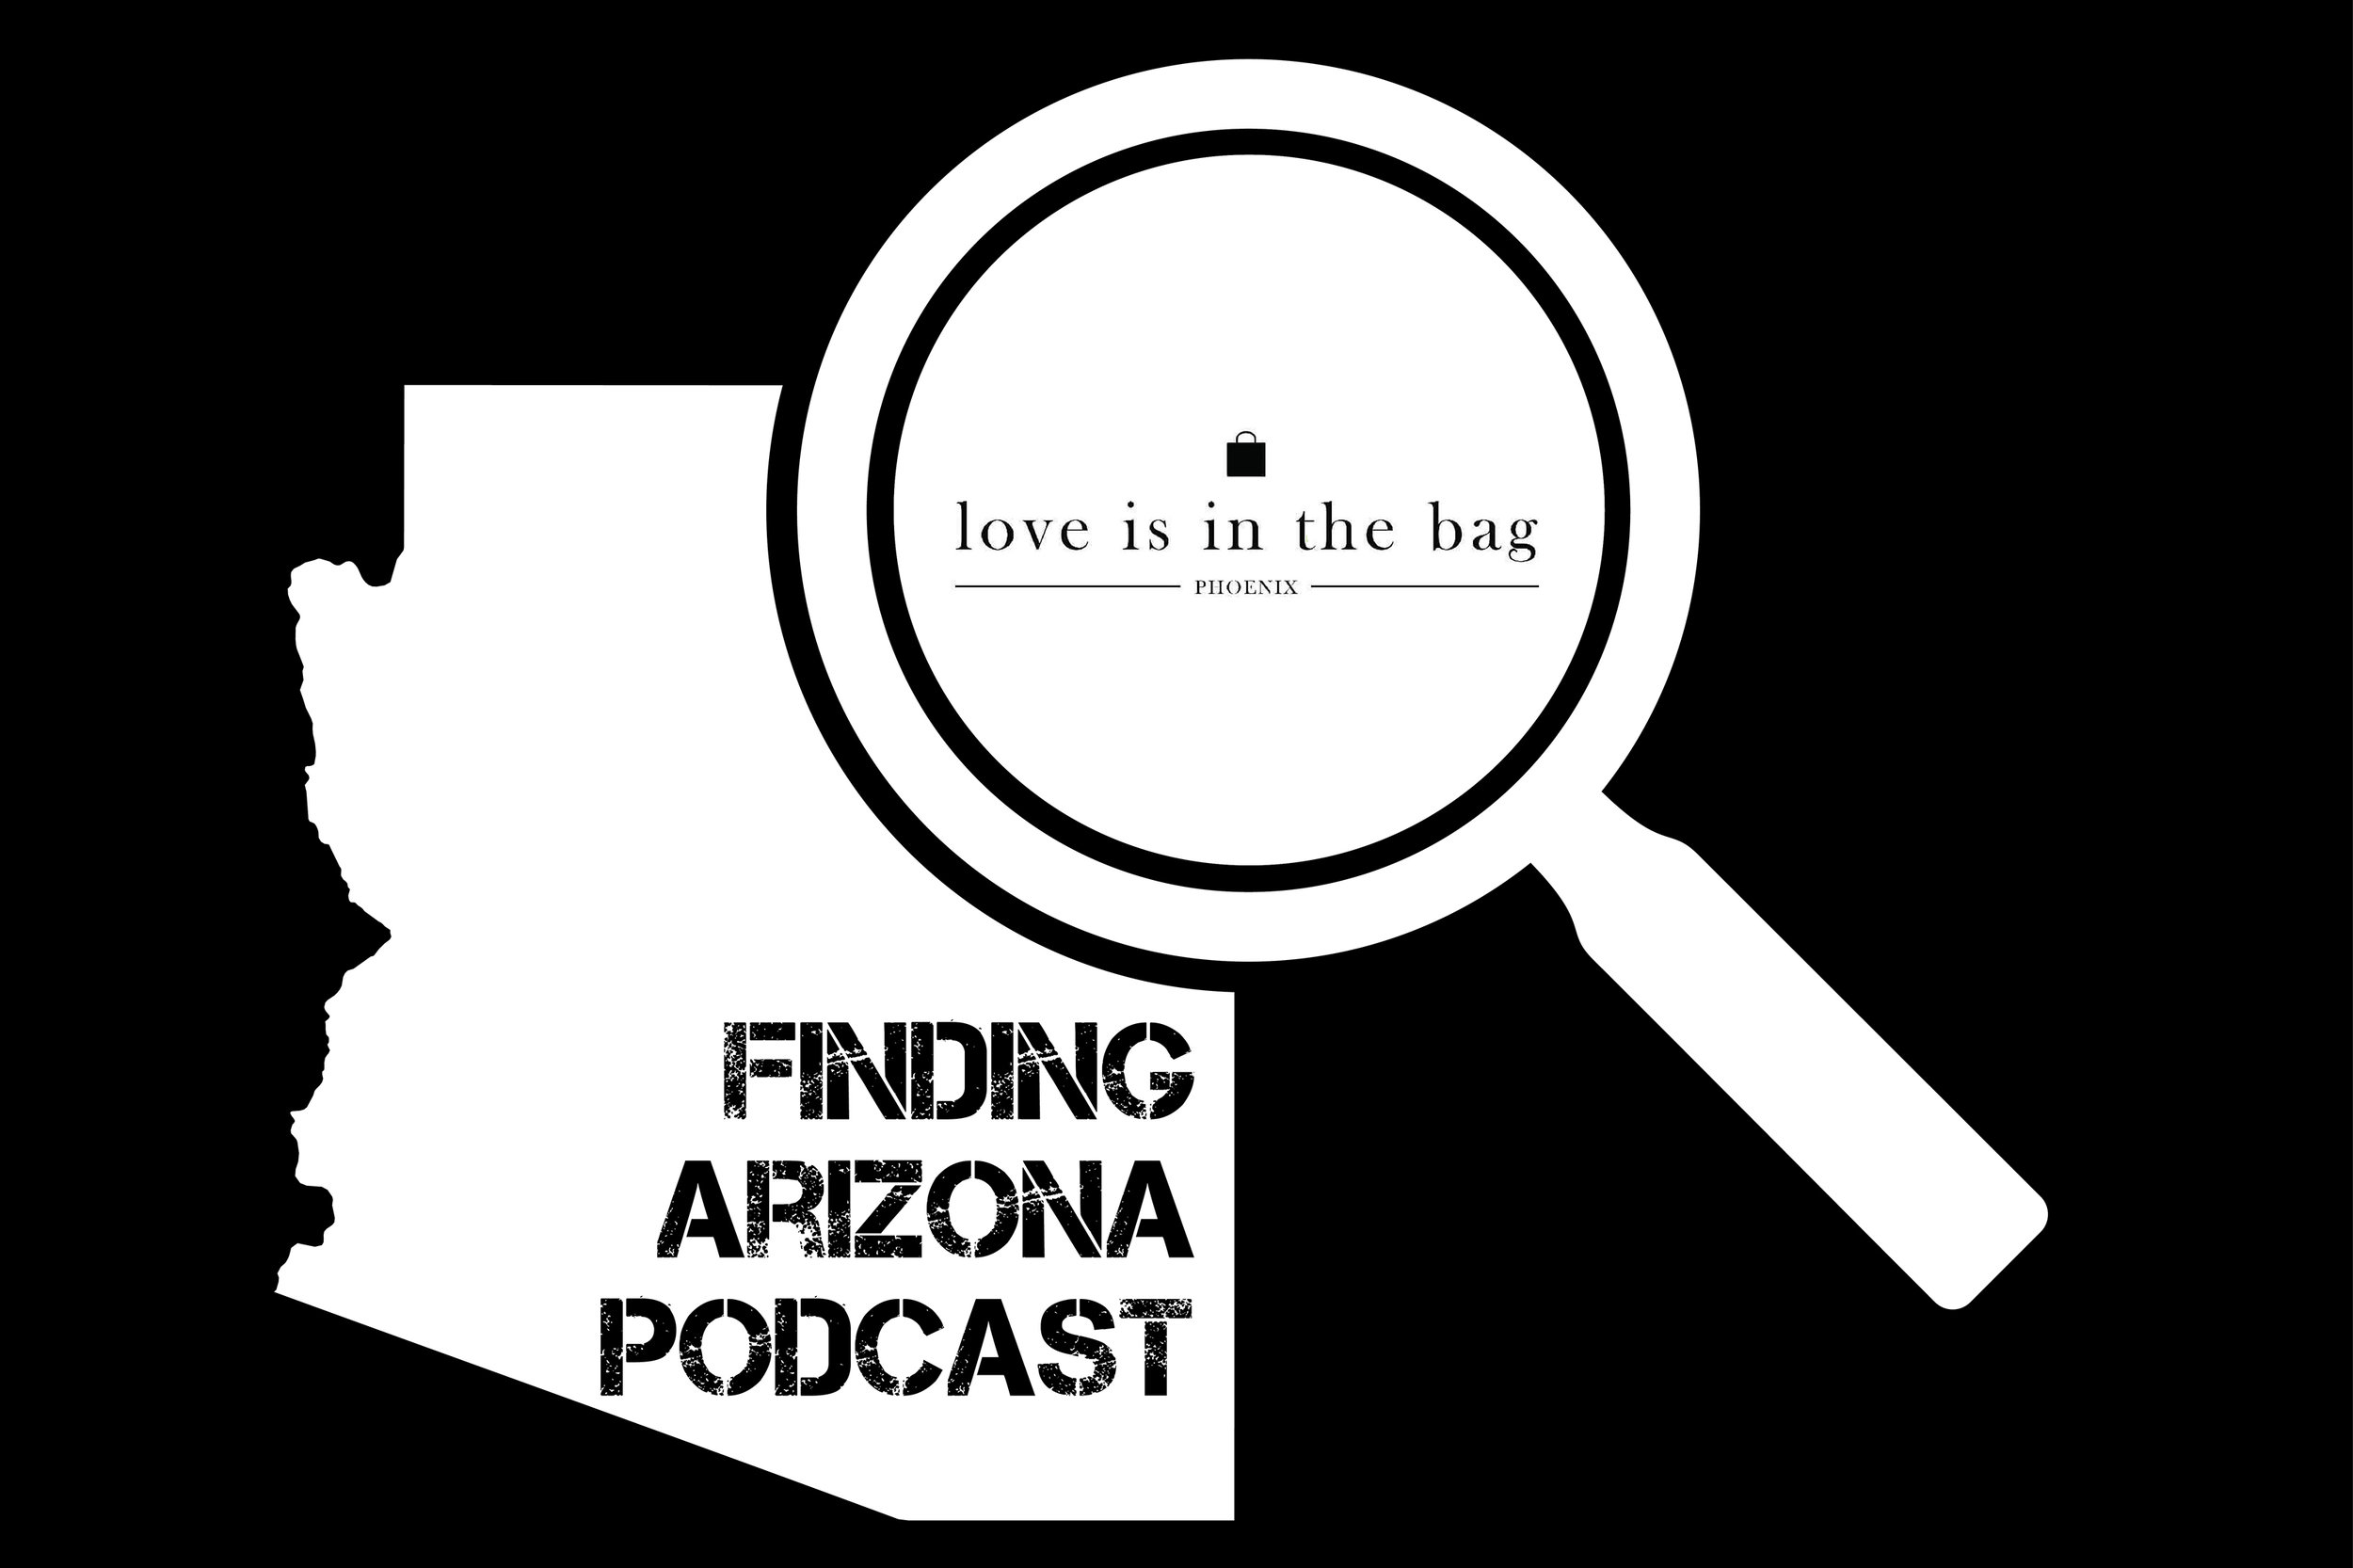 PodCastLogo-LoveisintheBag.jpg